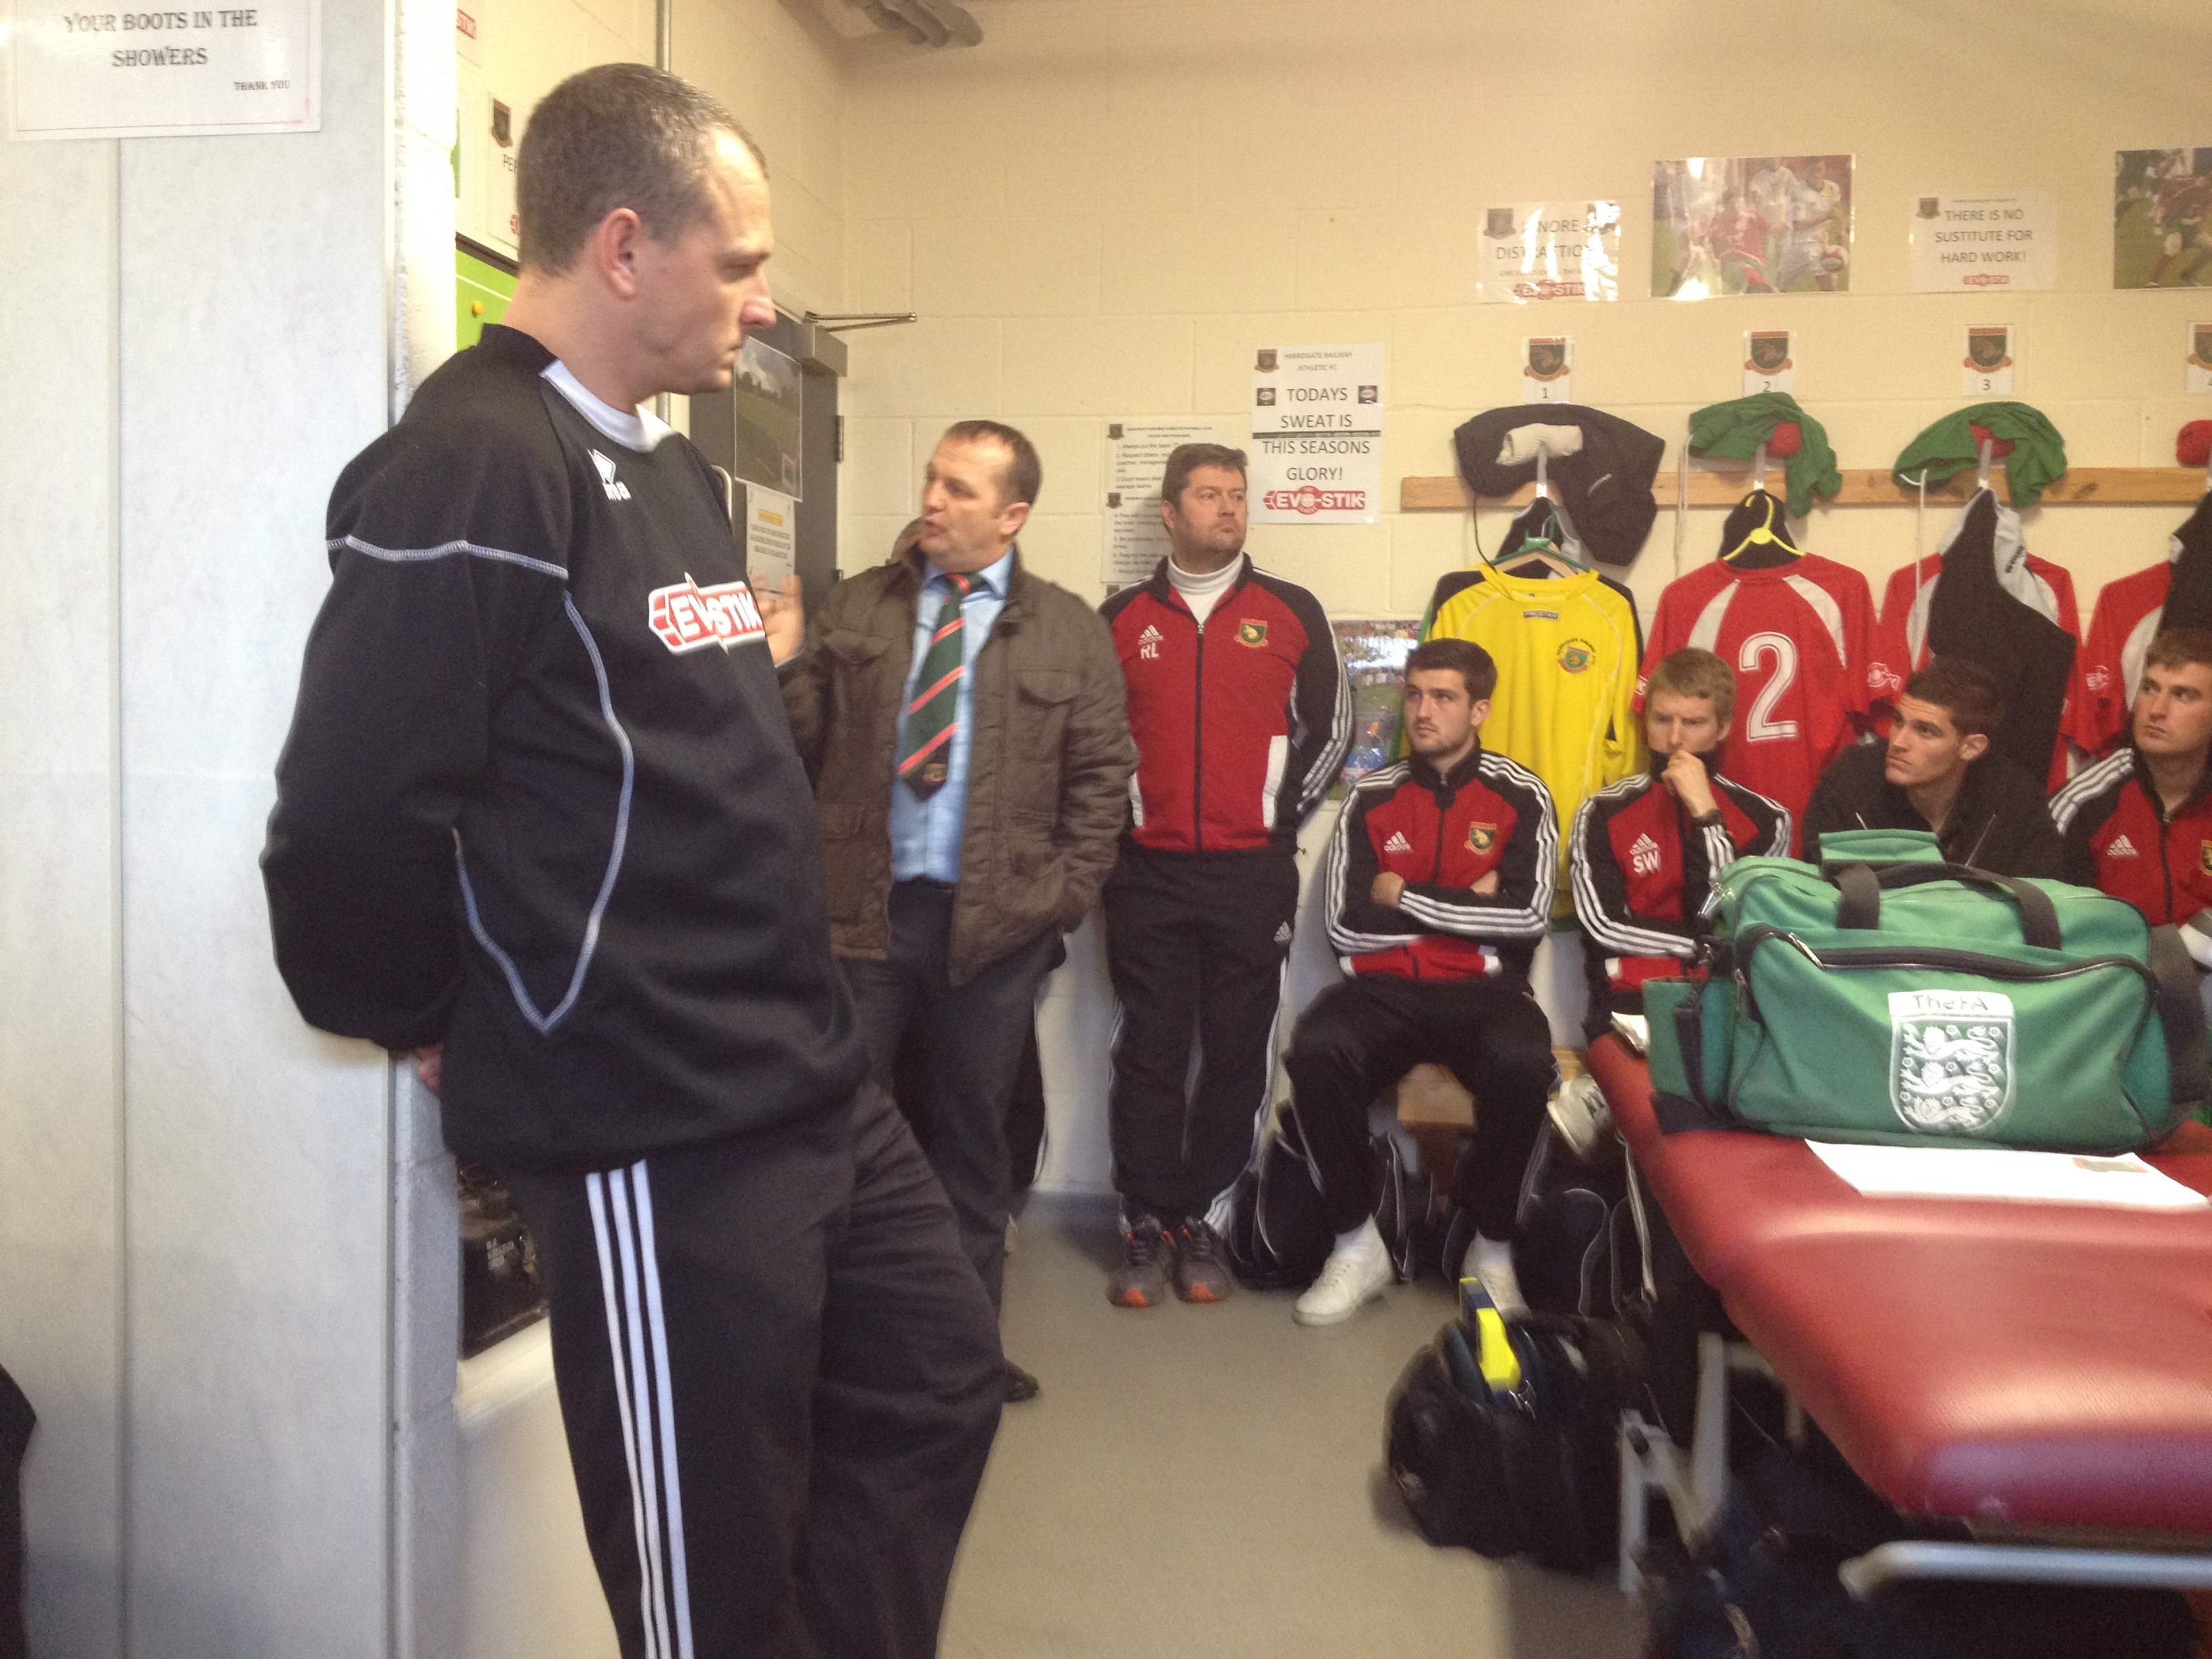 Billy Miller gives his team talk